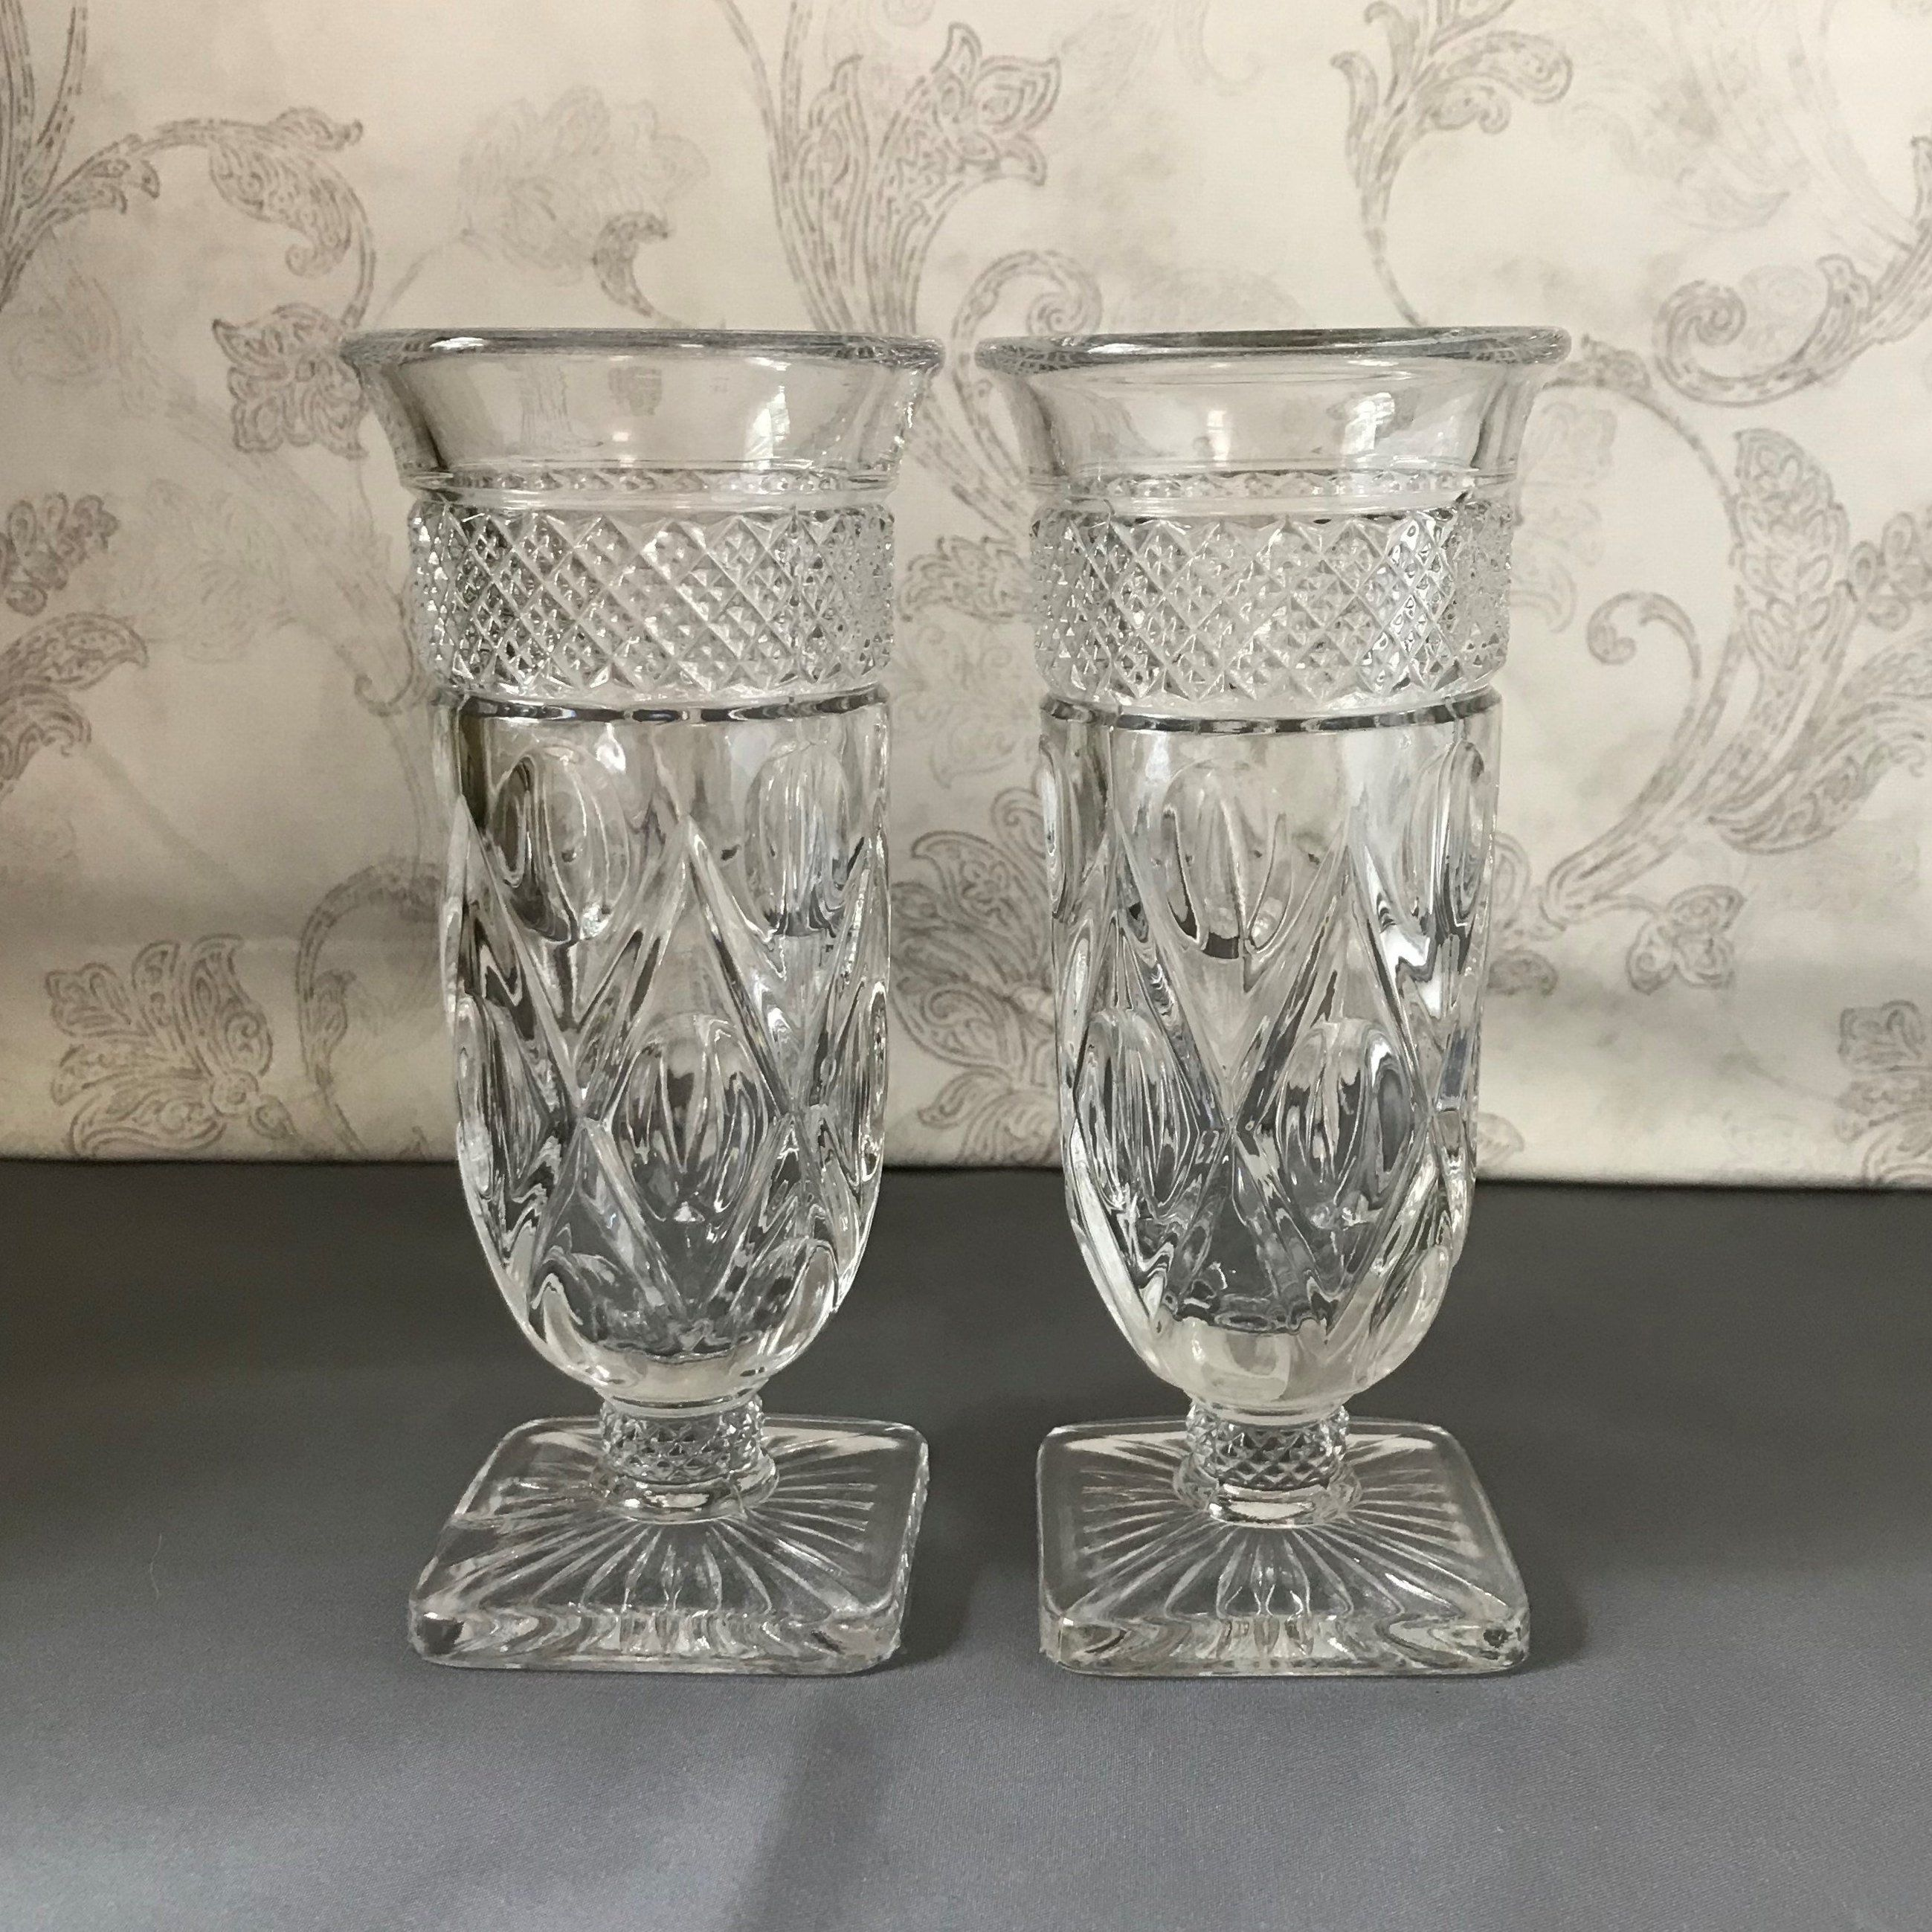 Set Of 2 Parfait Glasses Cape Cod Clear Imperial Glass Vintage Ice Cream Sundae Dish Footed Tumbler Juice Parfait Glasses Vintage Ice Cream Imperial Glass